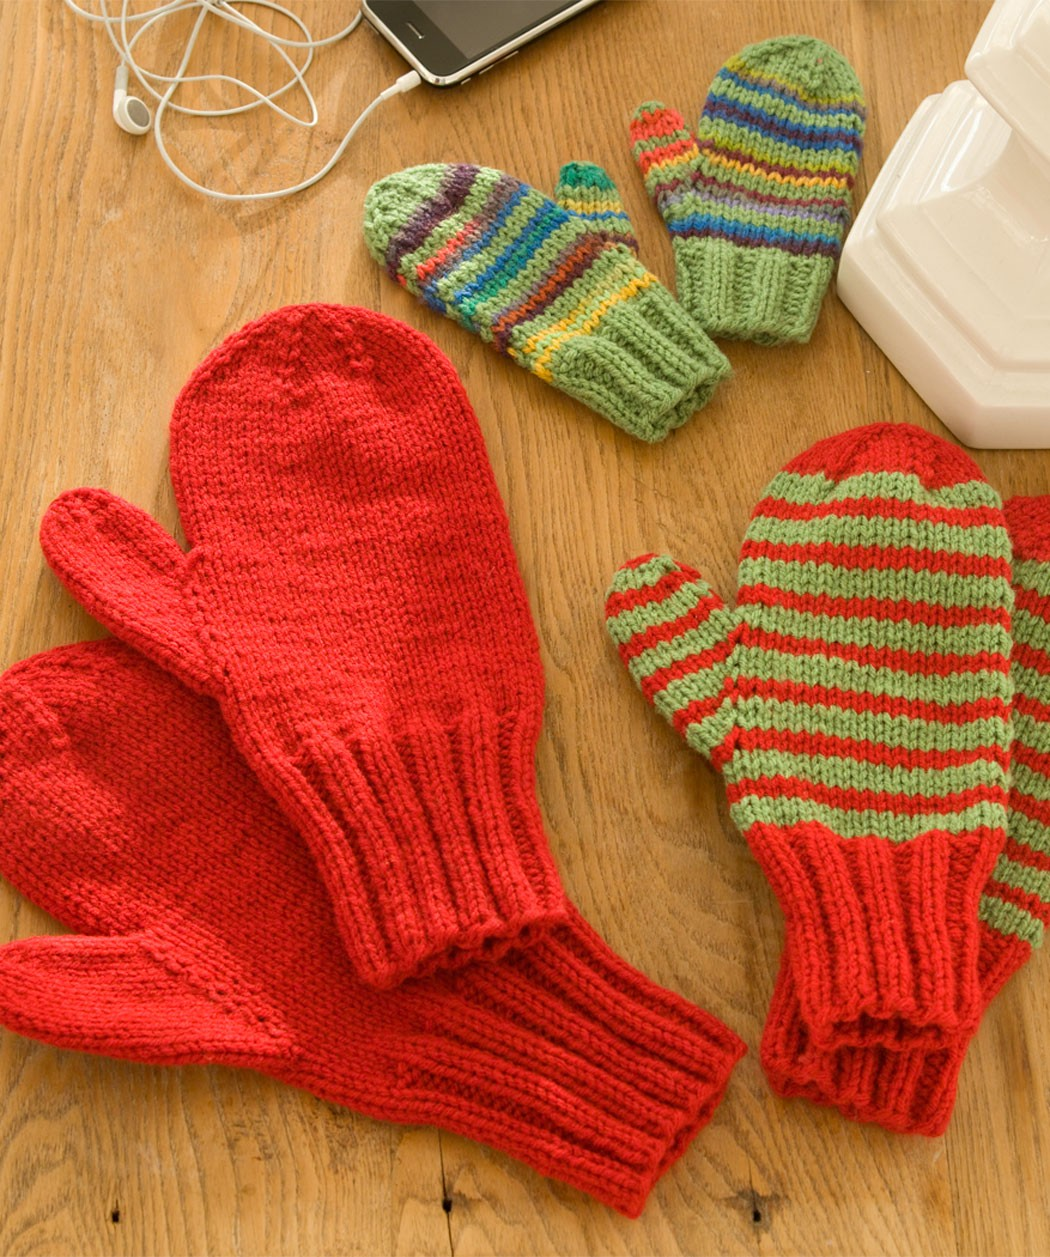 Double Knit Mittens Free Pattern : Free Mitten Pattern To Knit myideasbedroom.com